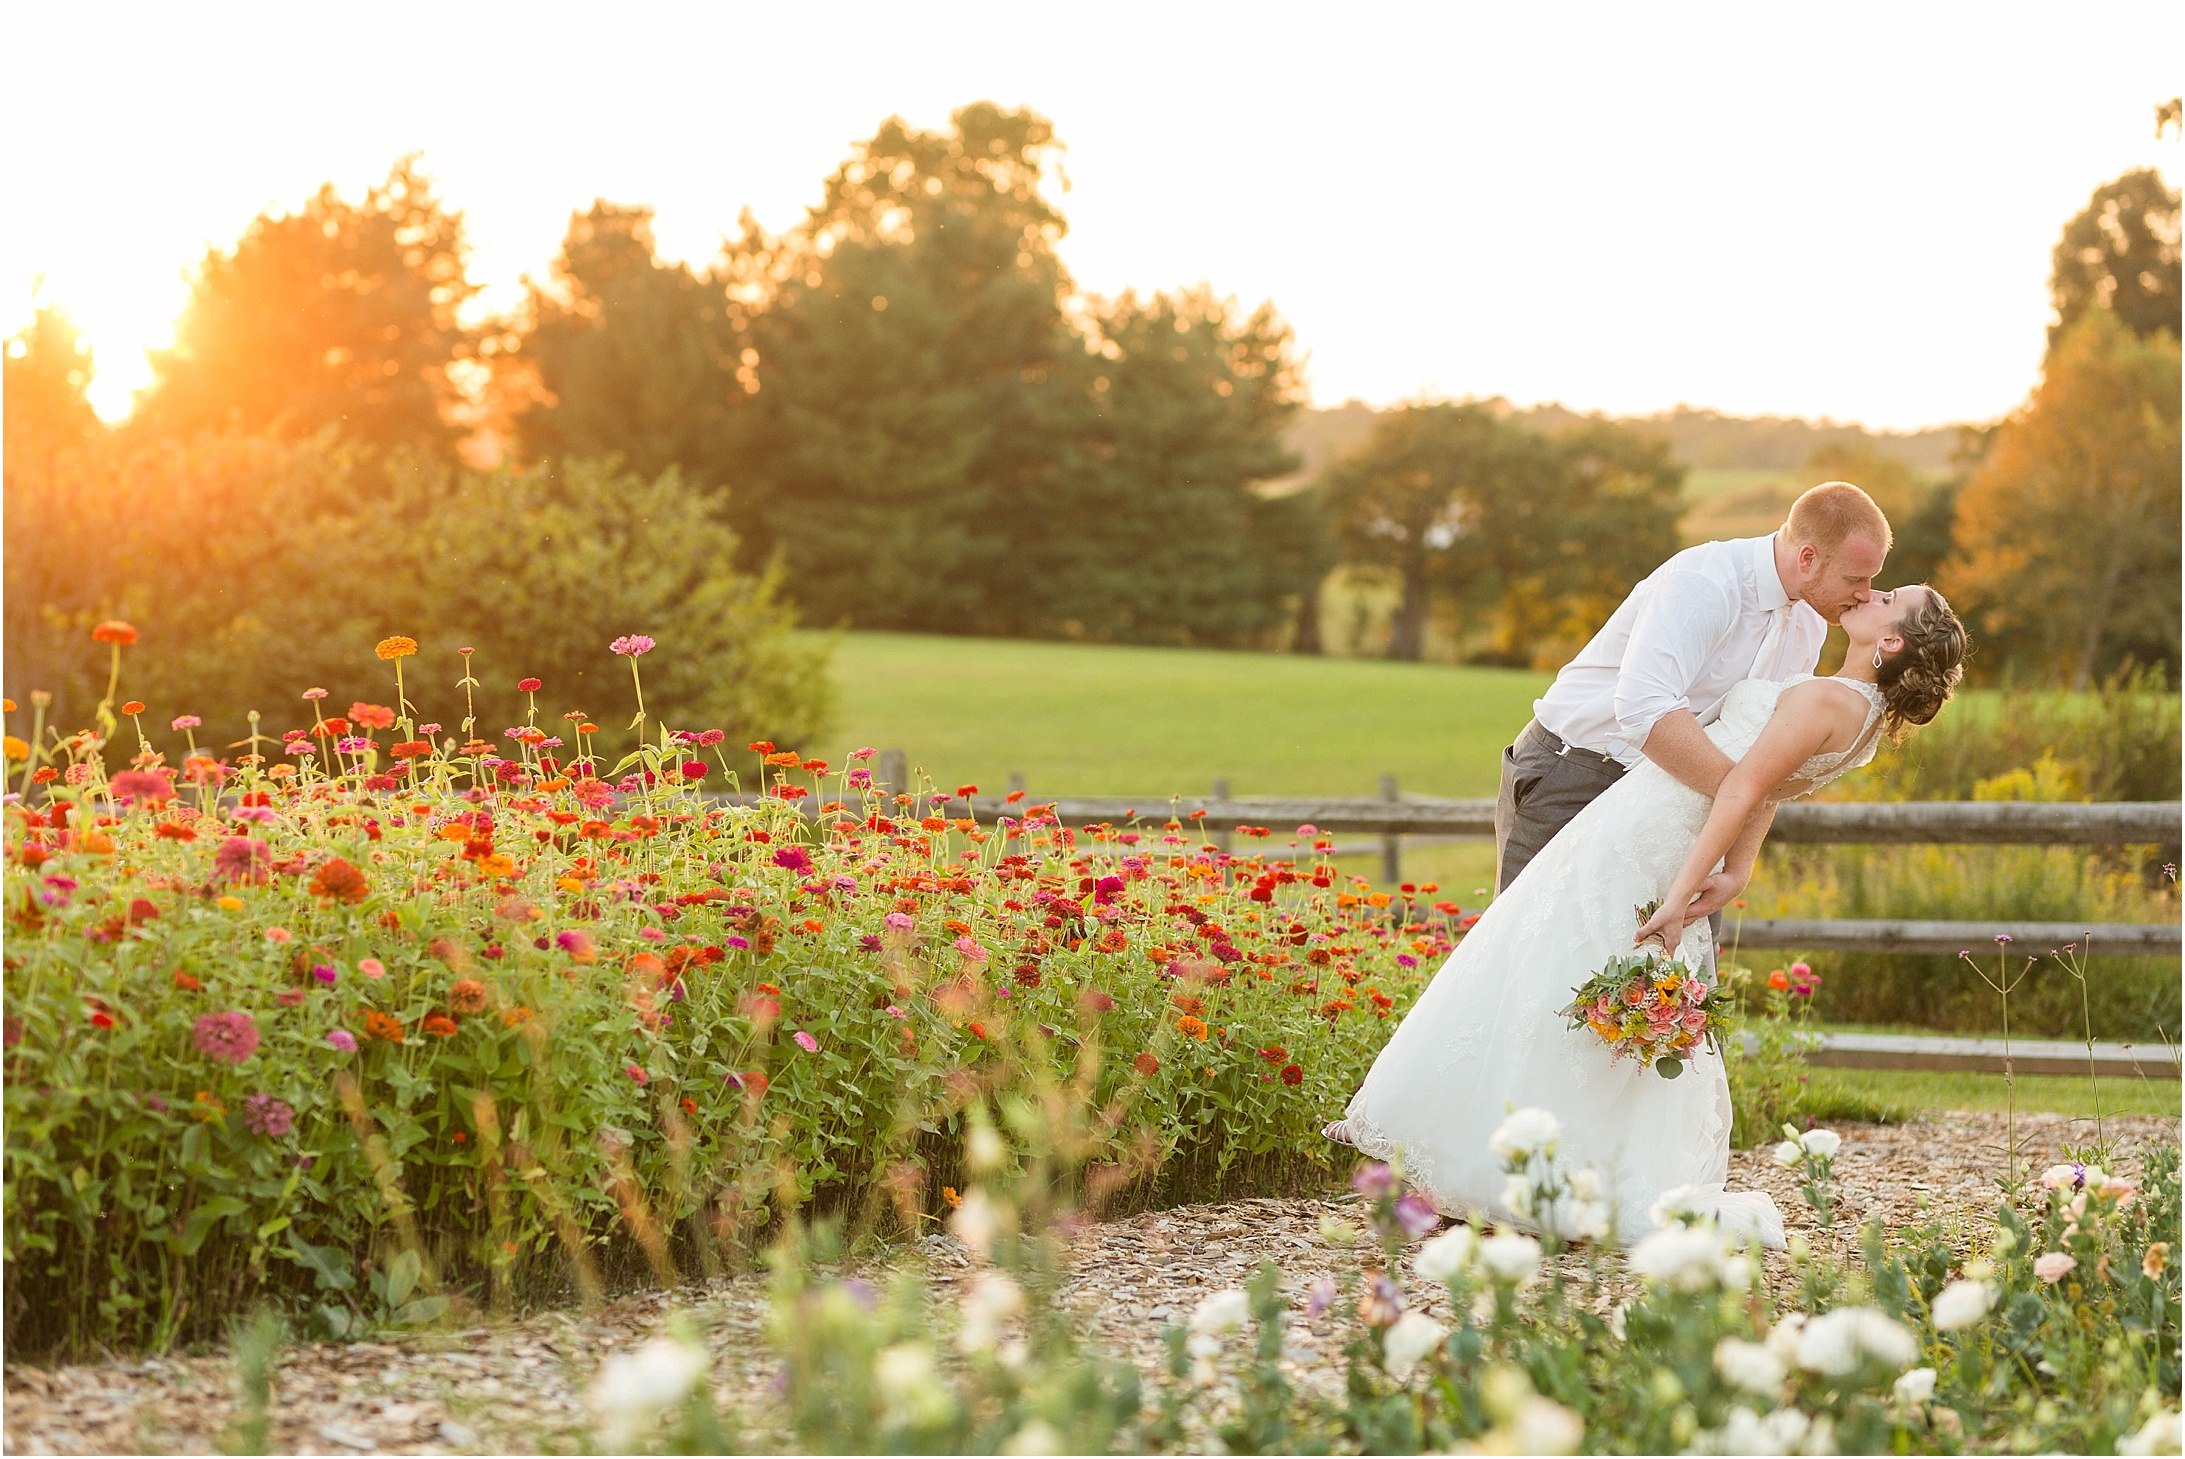 Basic -2700 - 6 Hours of Wedding PhotographyEngagement Session